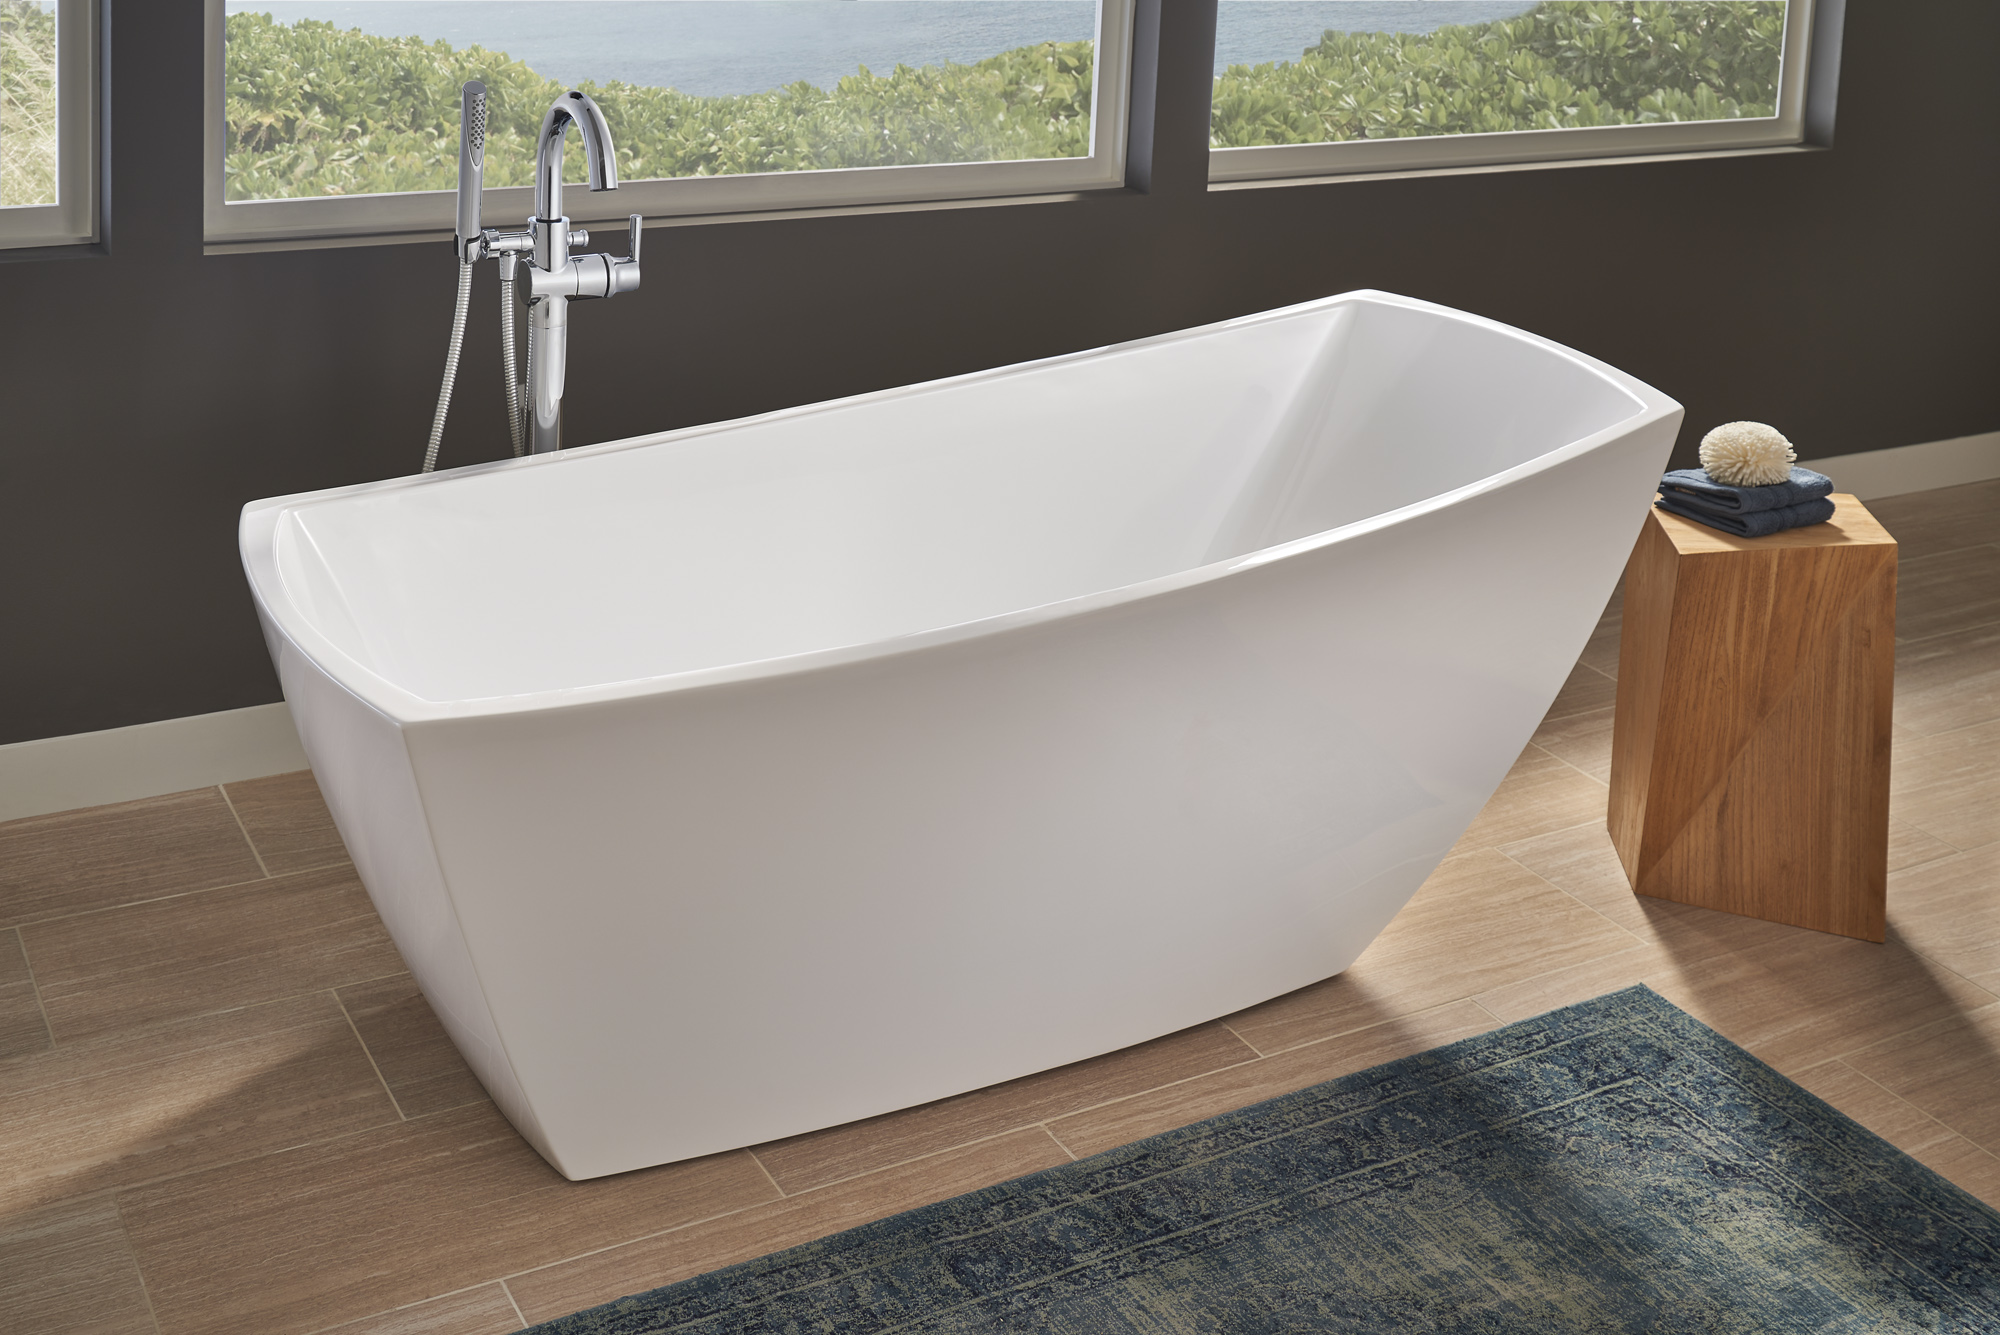 Jacuzzi Stella Soaker Tub Makes A Freestanding Statement JLC - Free standing jetted soaking tub